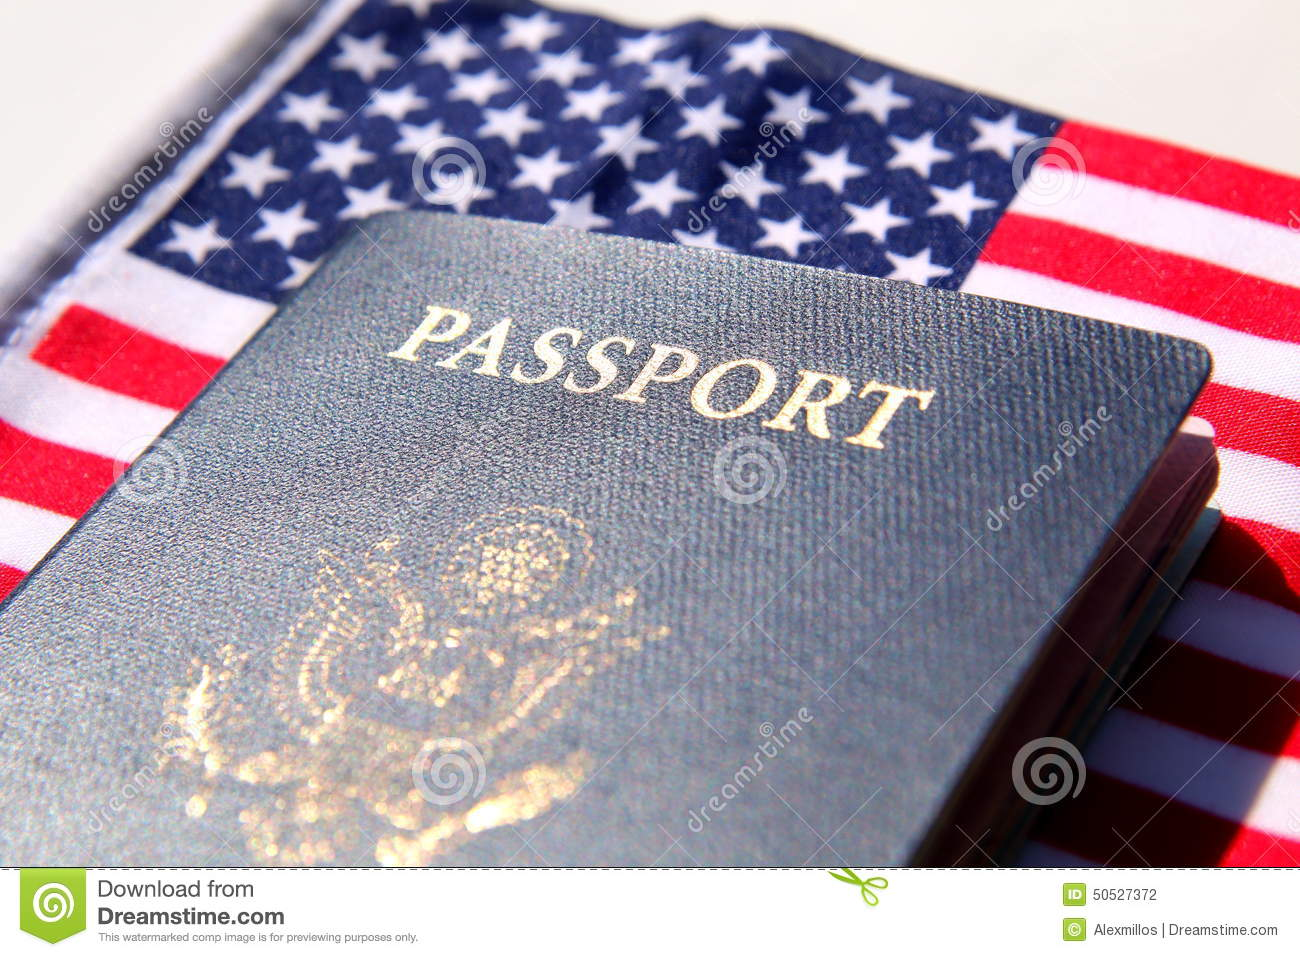 US passport over a red, white and blue flag